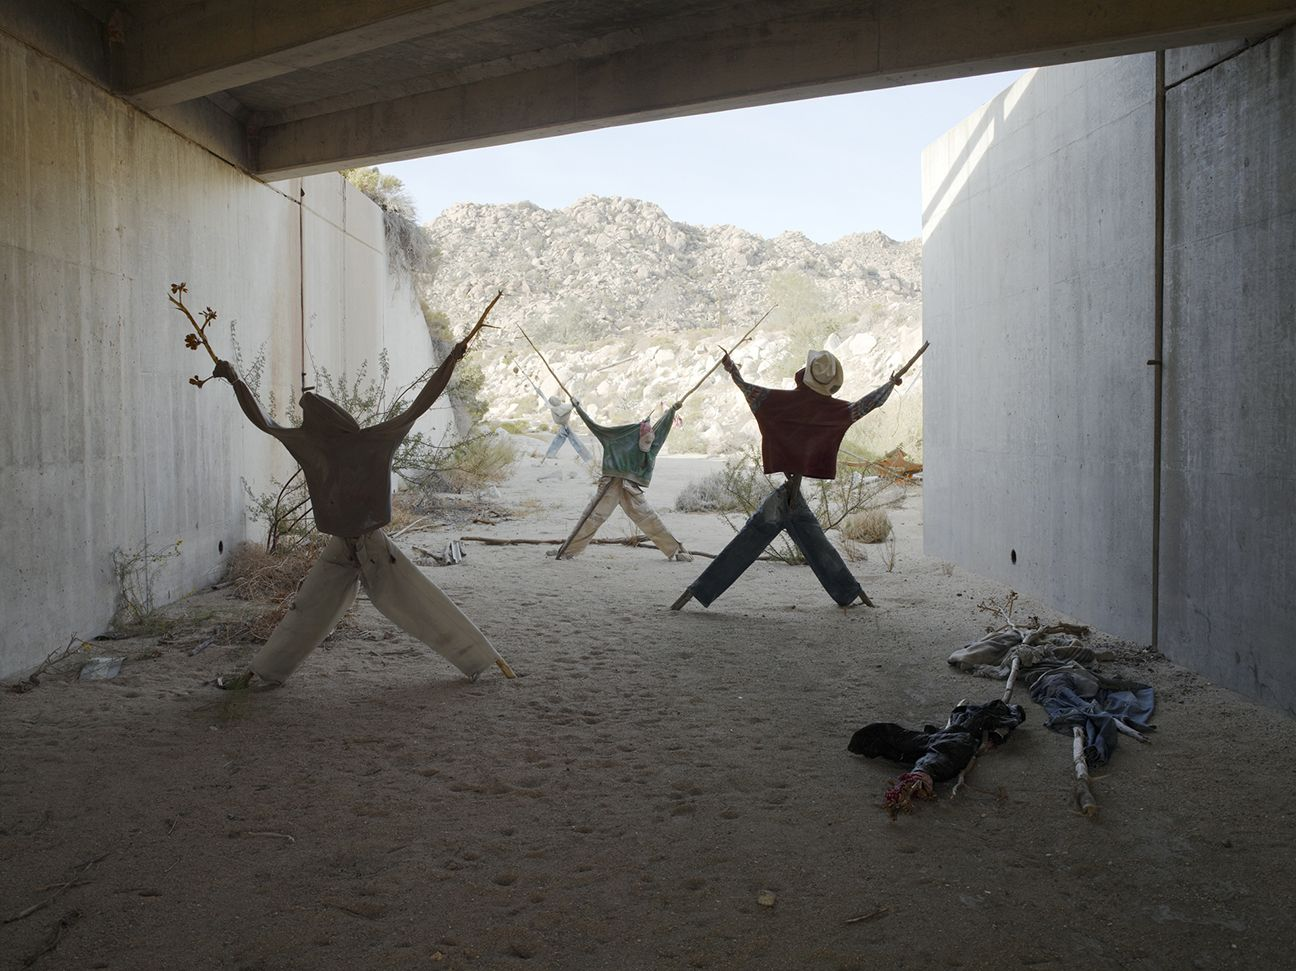 Effigy #7, near Jacumba, California, 2009